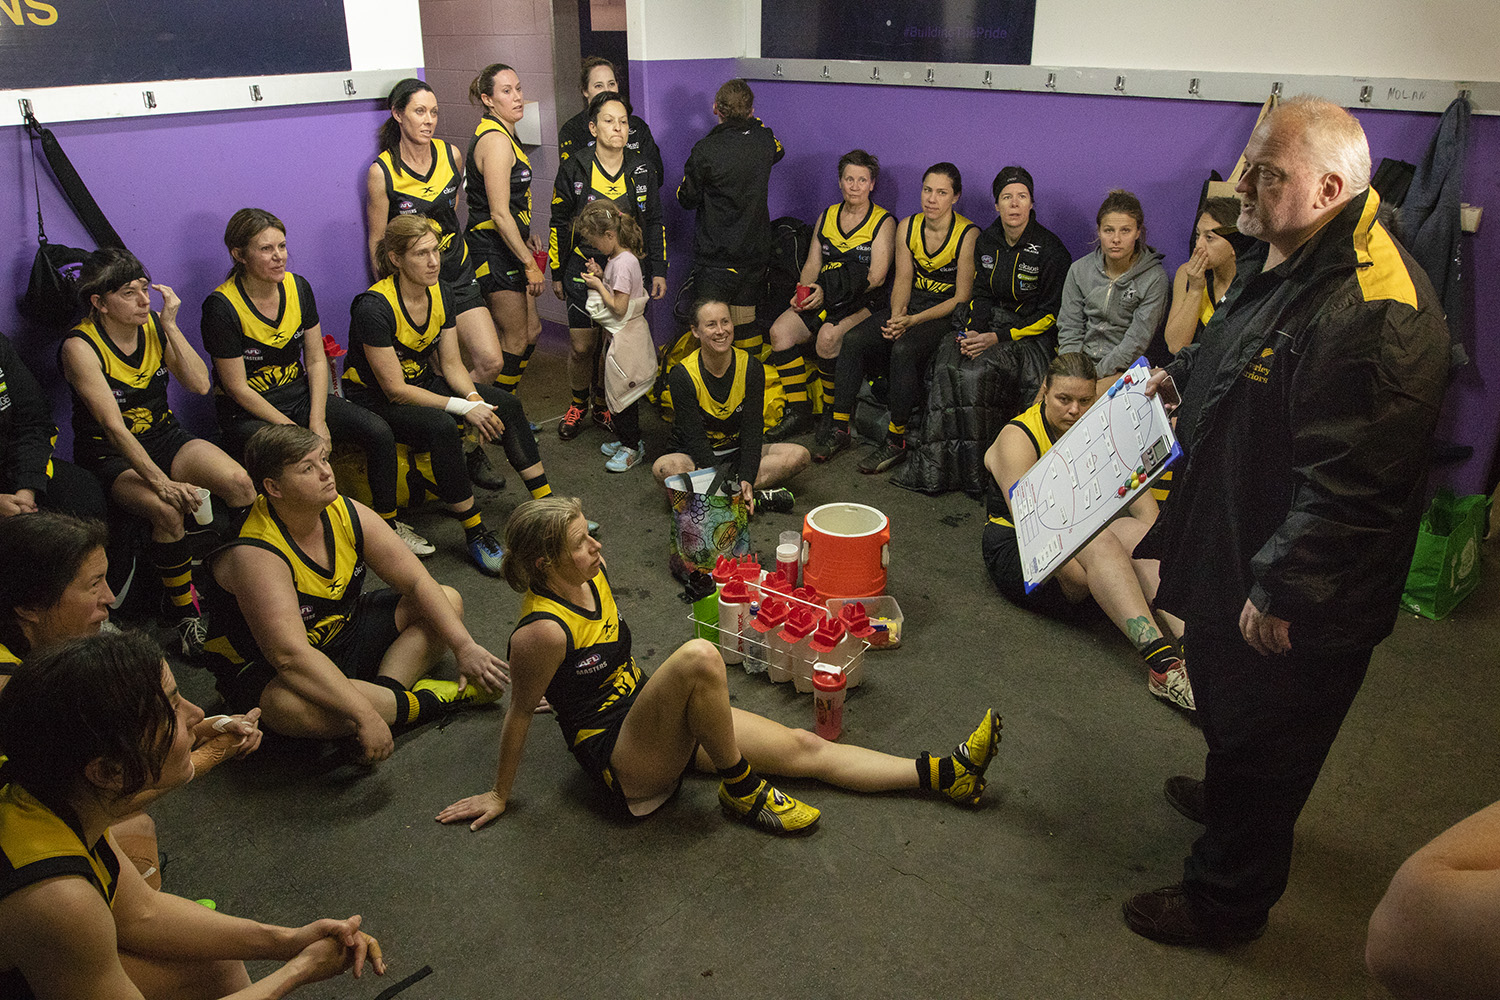 Pre-game instructions from coach Peter Nash. Beventyre (sitting at left) absorbs the message.